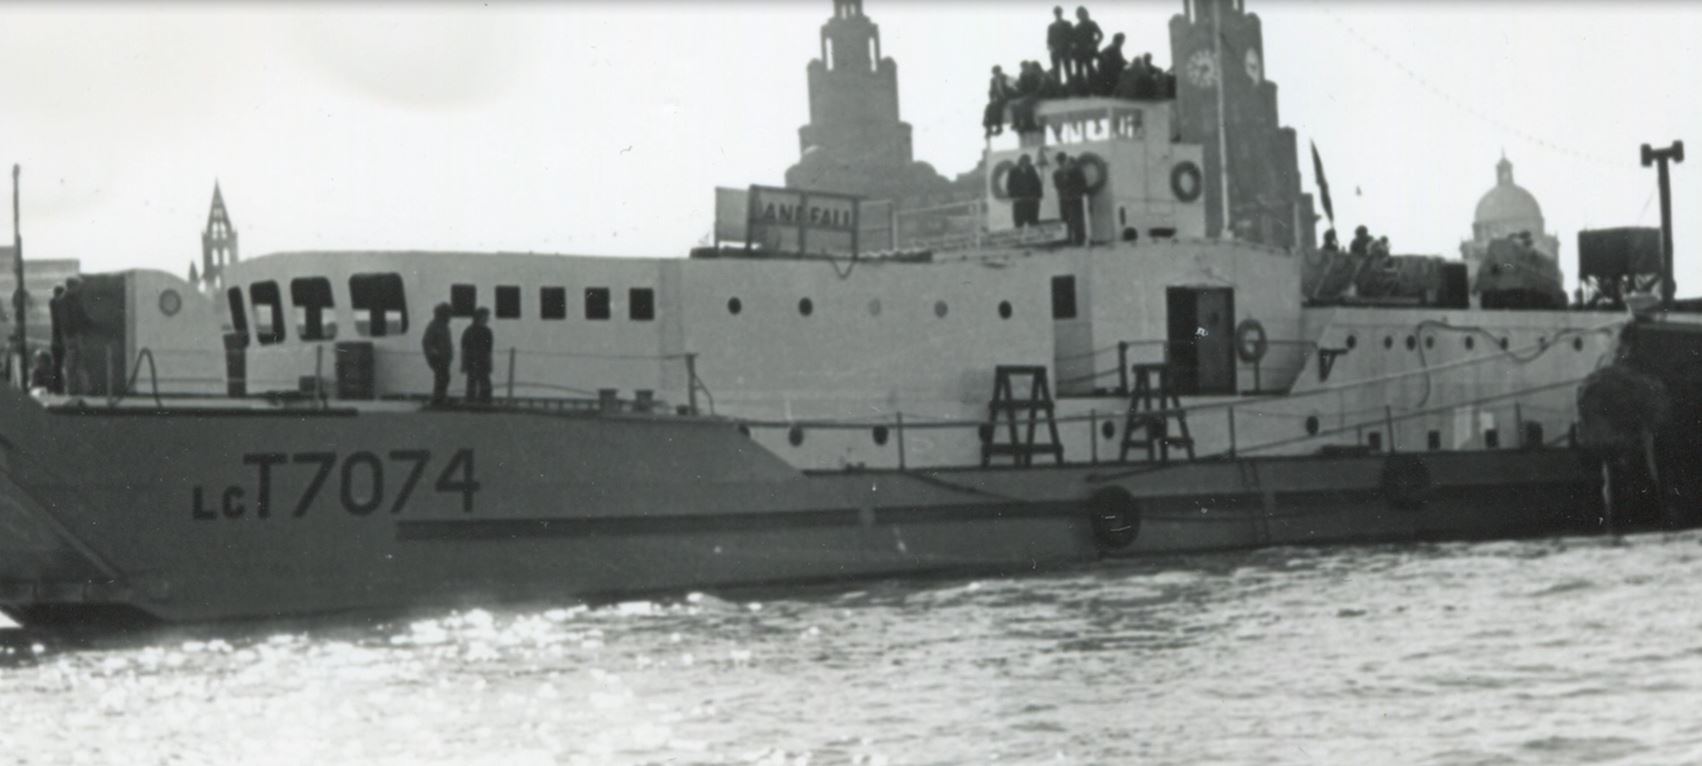 Image of the LCT on the water